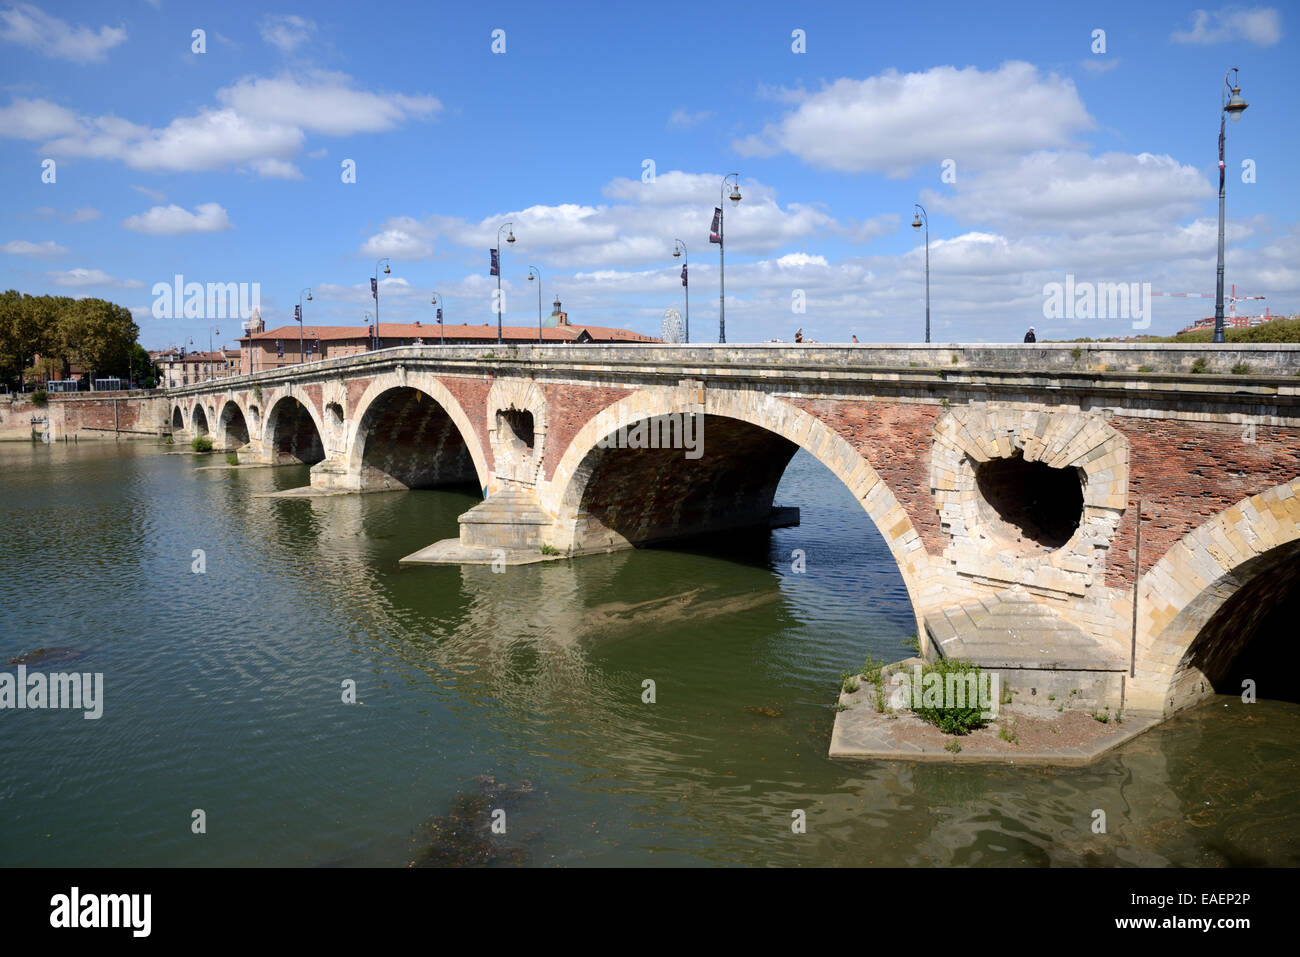 Pont Neuf or the New Bridge Crossing the River Garonne Toulouse France - Stock Image